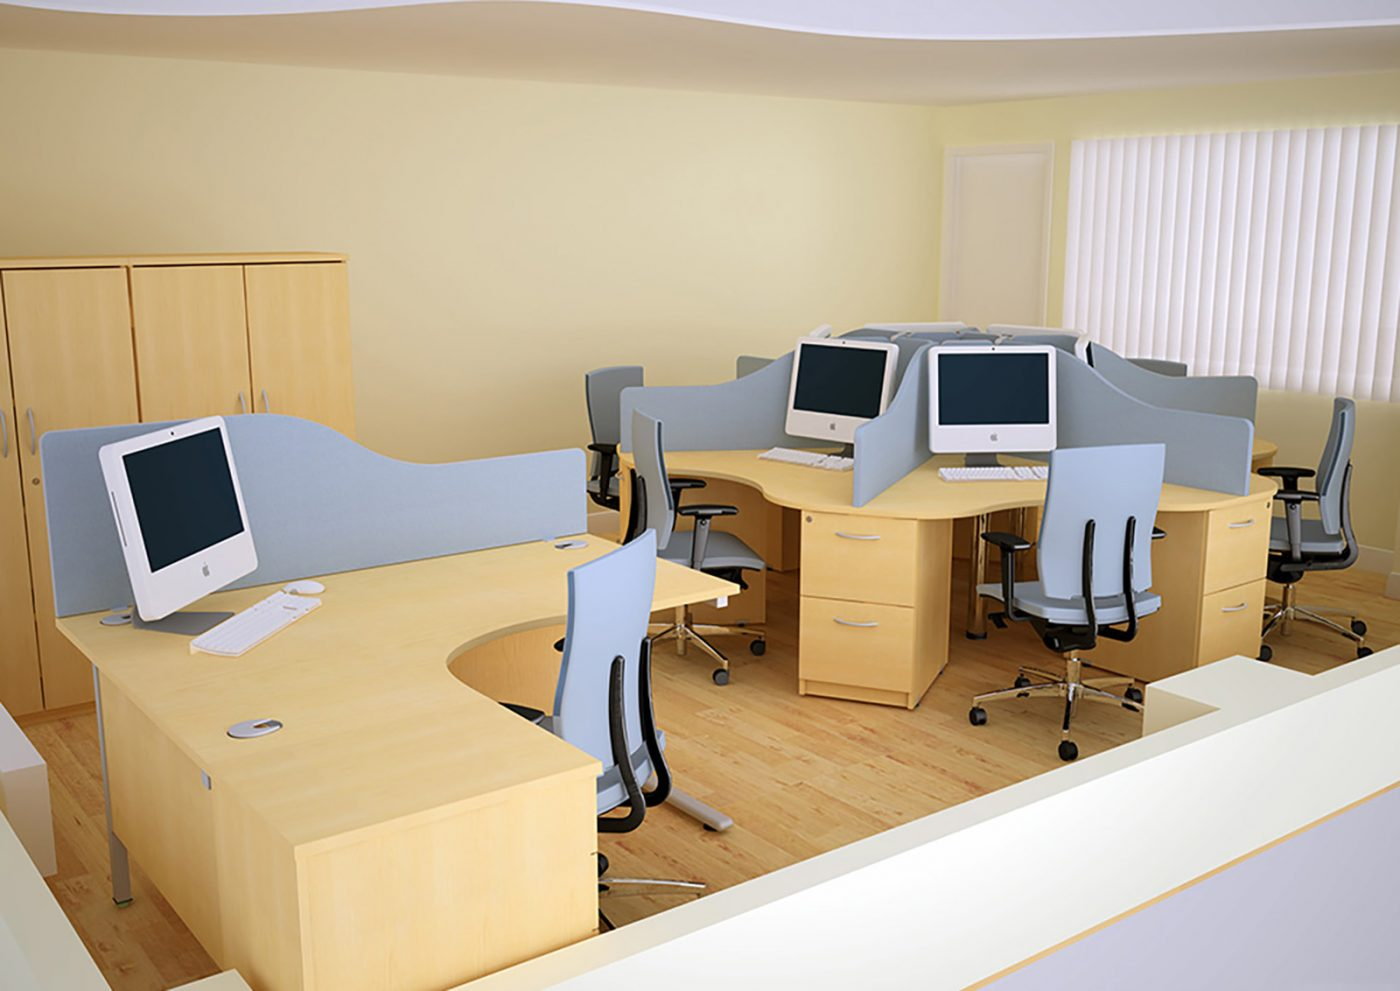 call centre furniture, core units, j shape desk, desktop screen, MFC